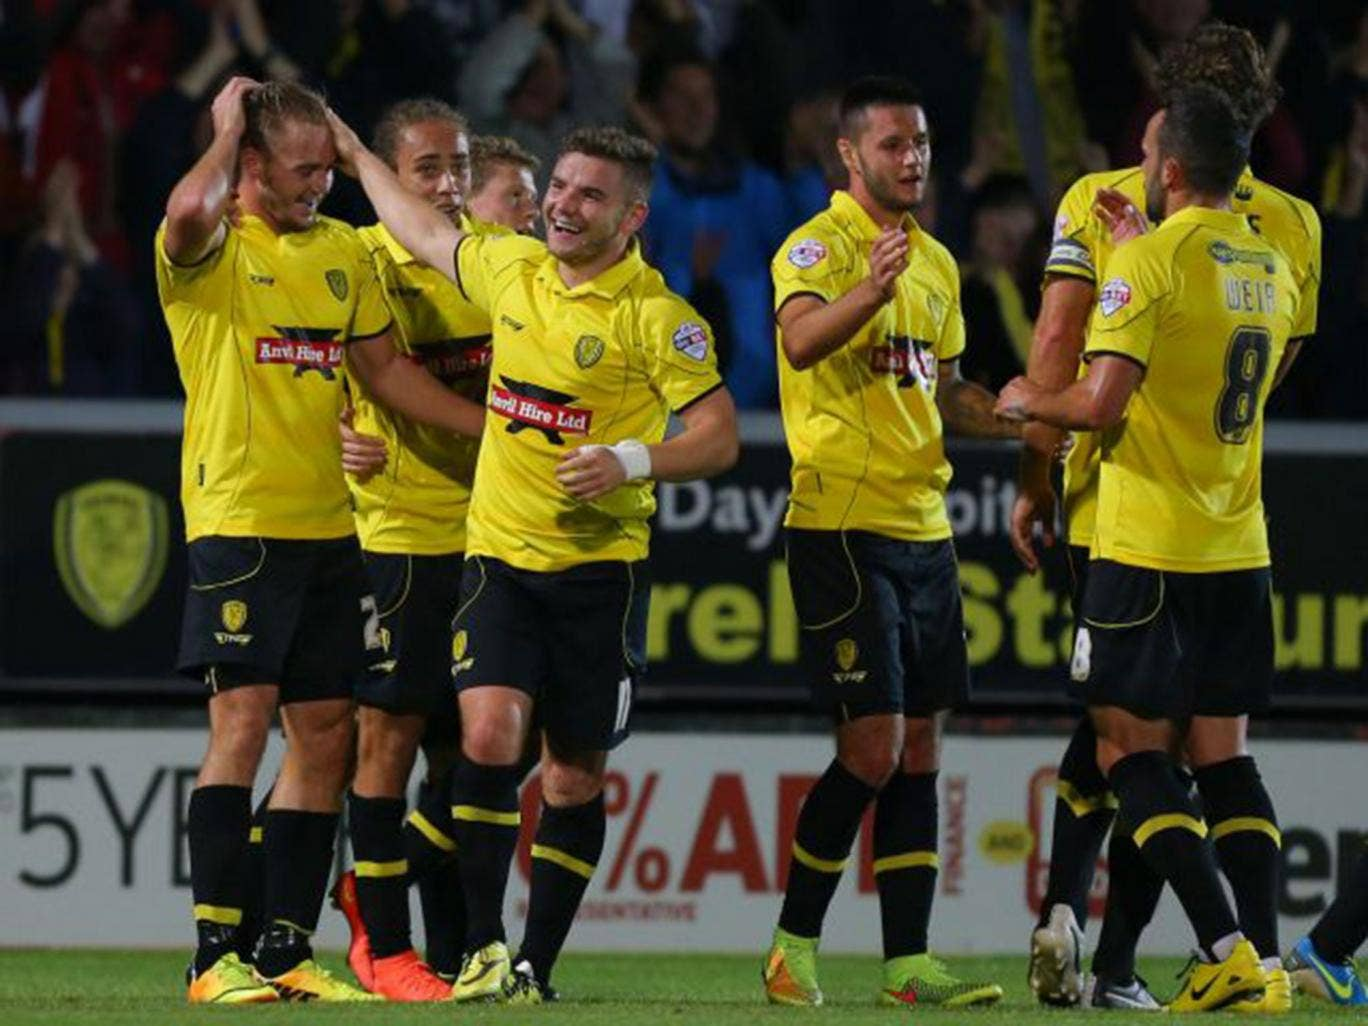 Burton Albion beat QPR 1-0 in the Capital One Cup